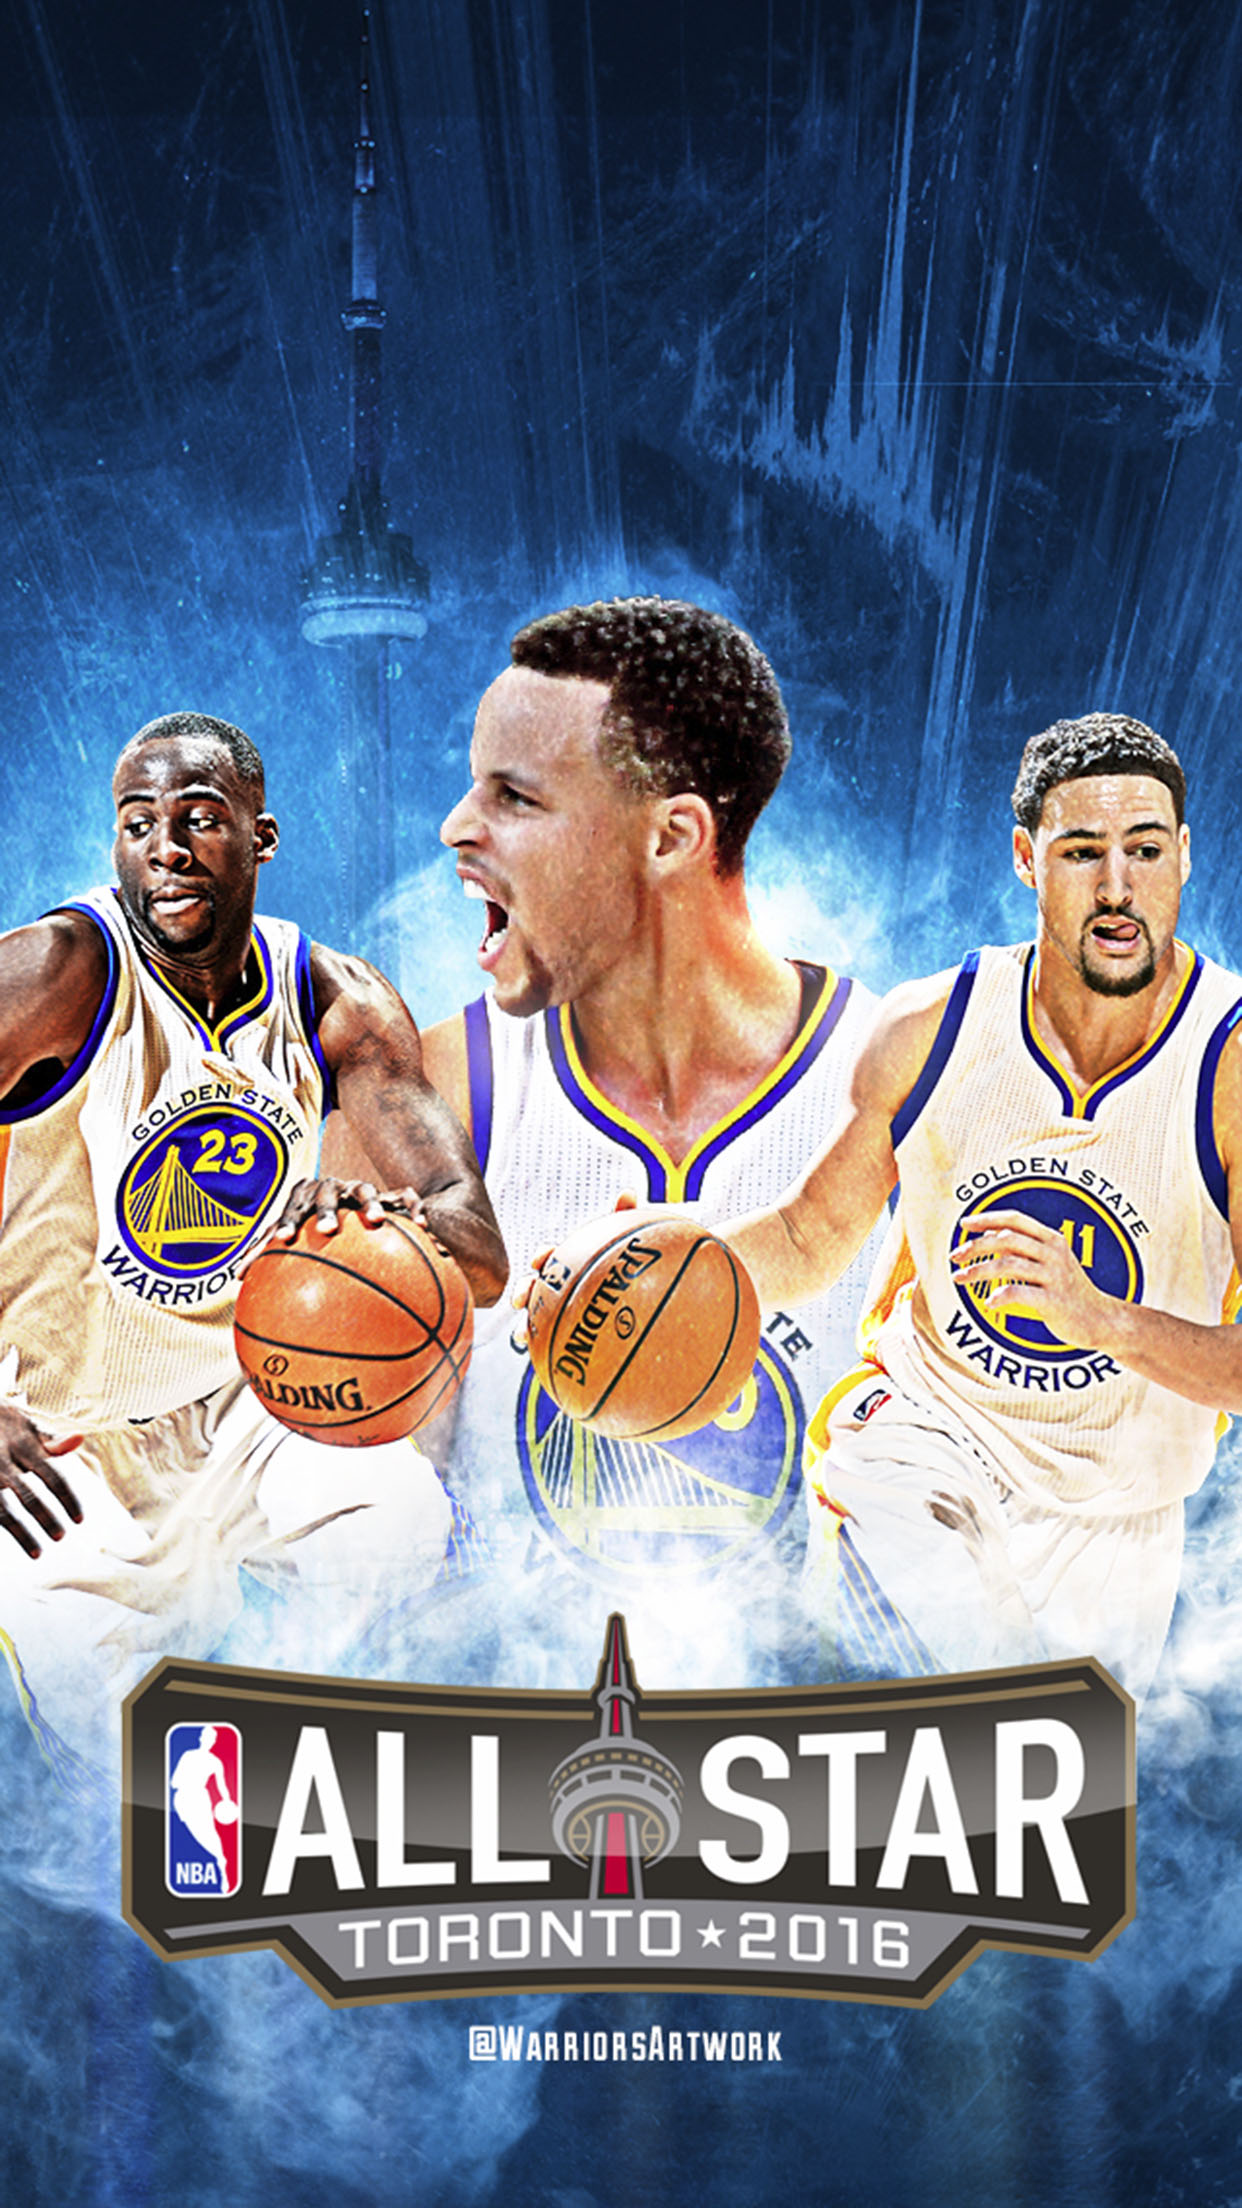 Golden State Warriors Gamers 3Wallpapers iPhone Parallax Golden State Warriors: Gamers